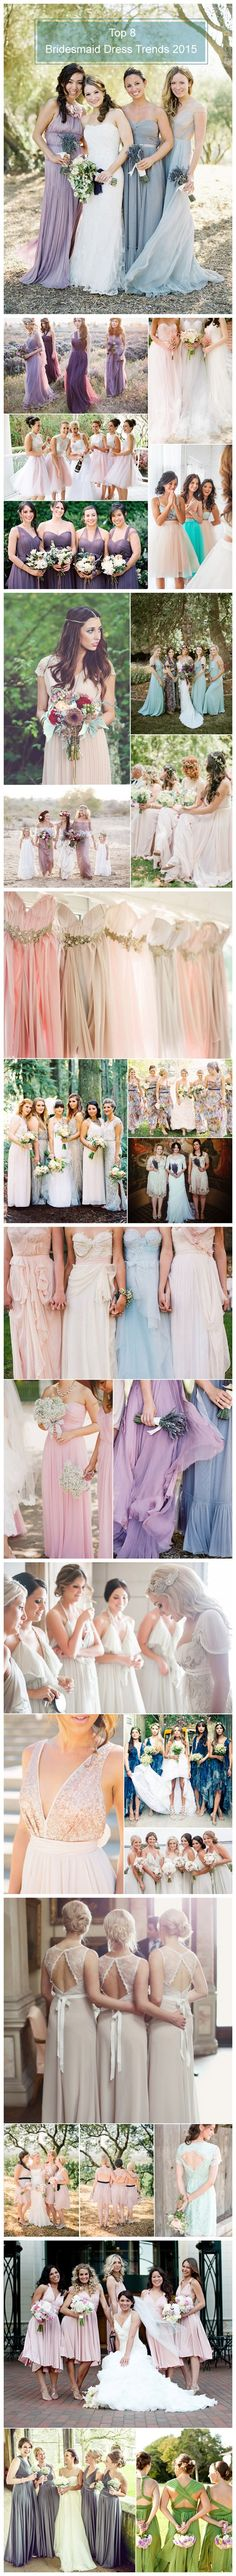 top 8 bridesmaid dress trends for wedding 2015